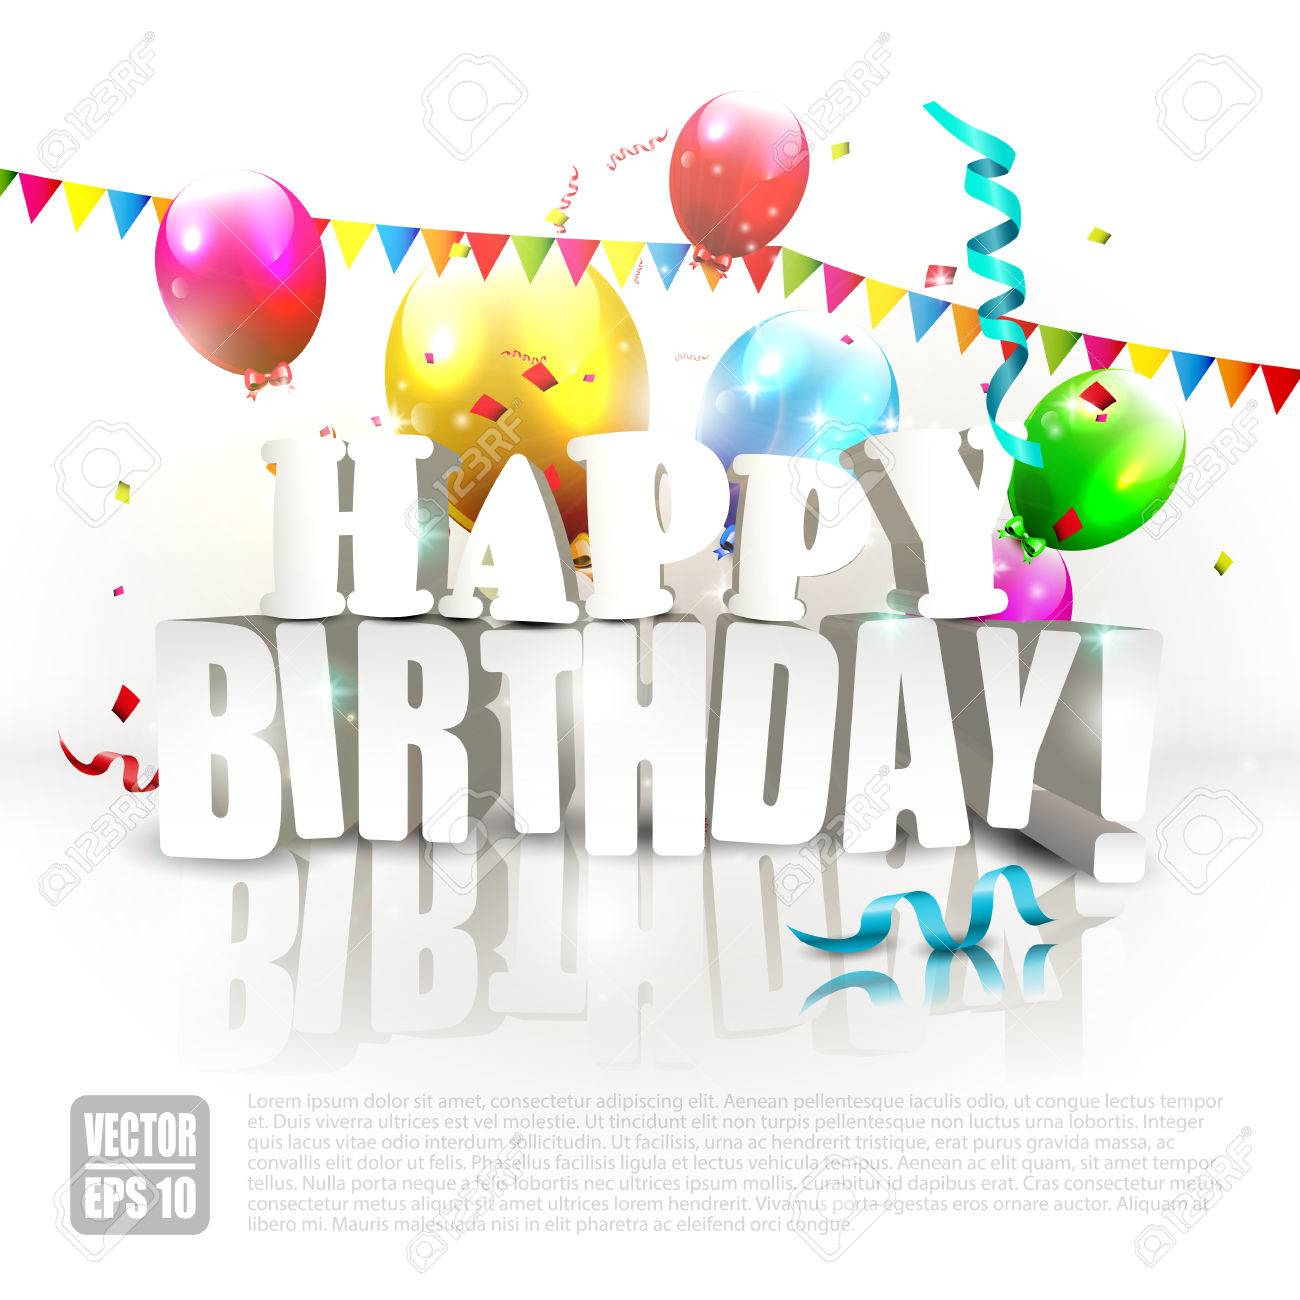 happy birthday poster with photo ; 29817013-modern-birthday-poster-with-colorful-balloons-and-happy-birthday-inscription